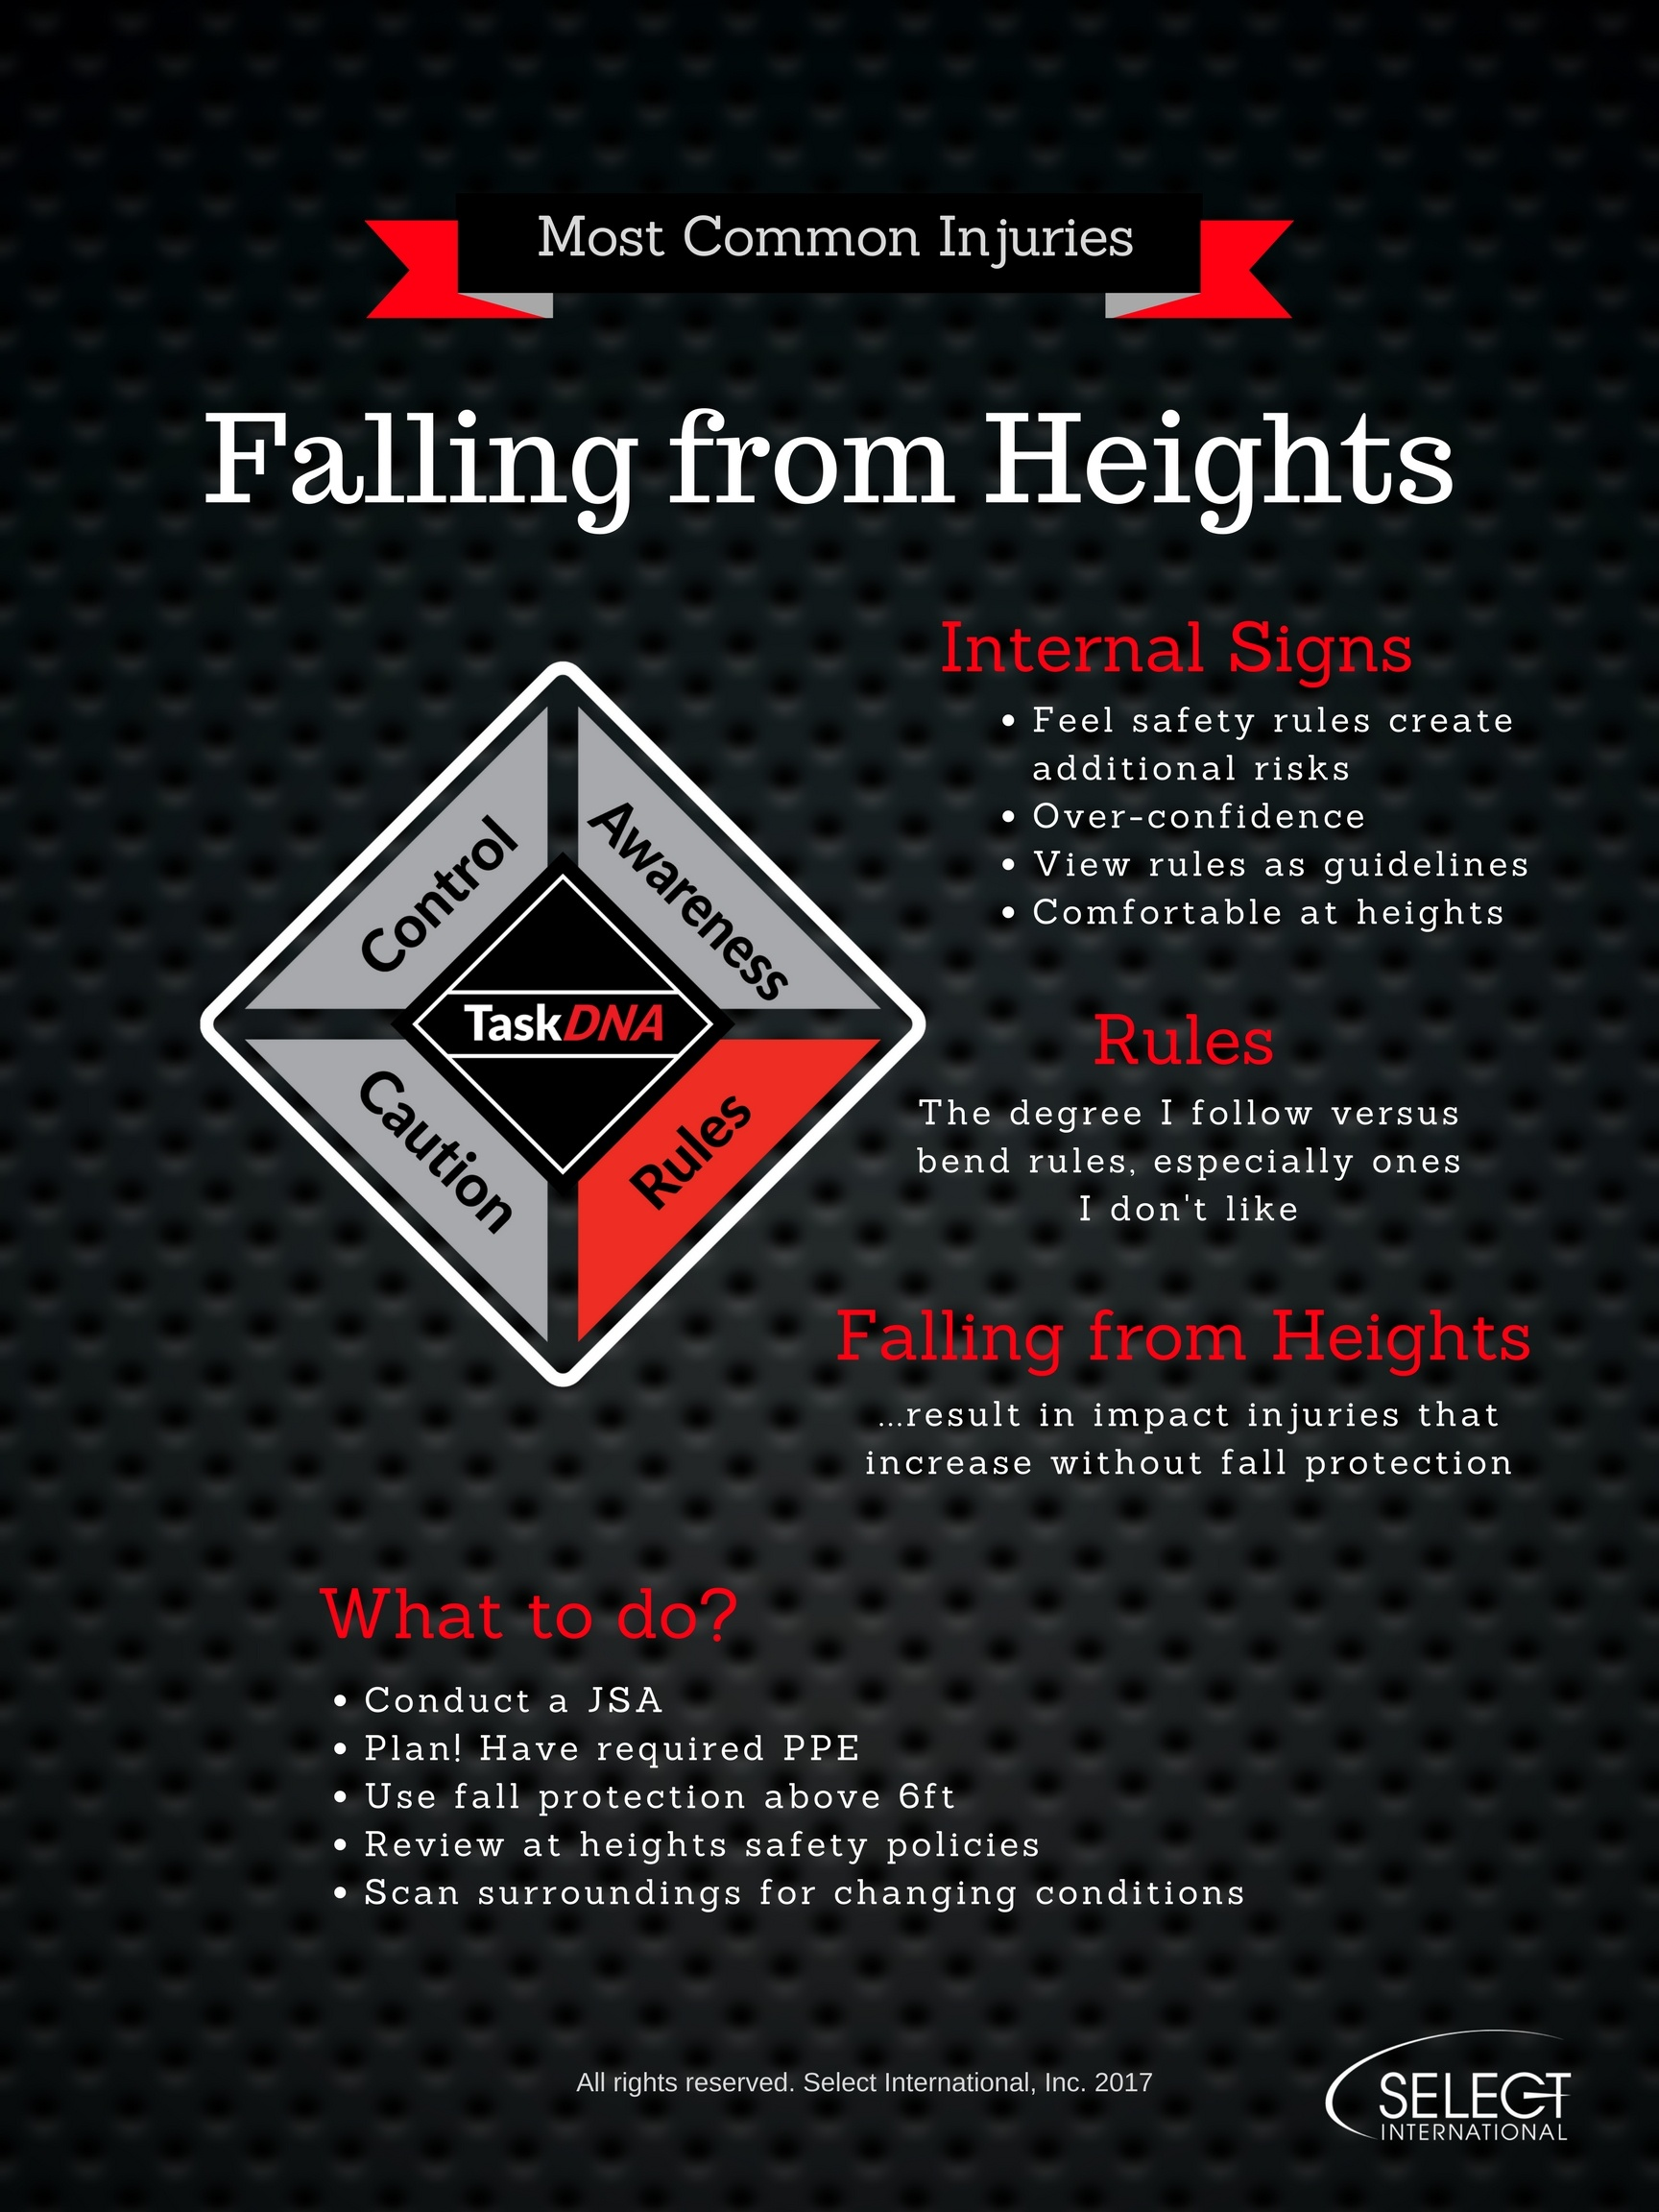 Falling from Heights Poster.jpg